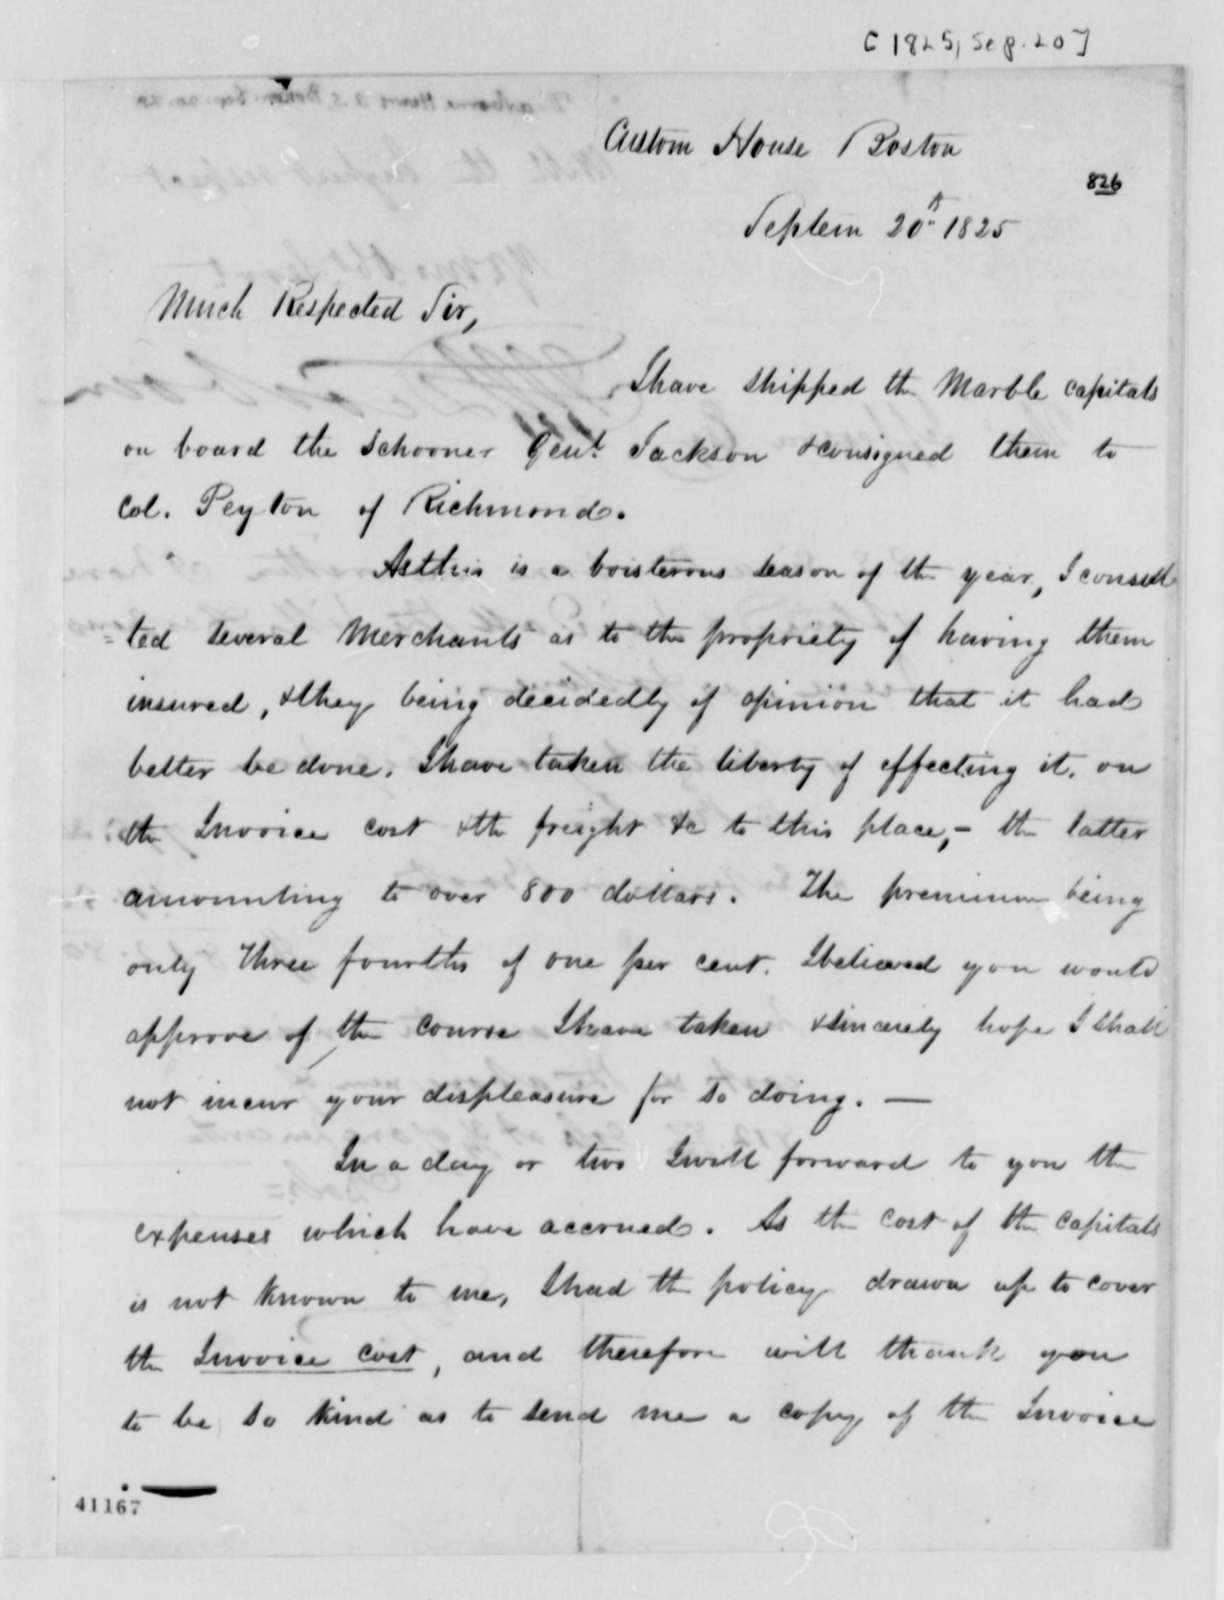 Henry A. S. Dearborn to Thomas Jefferson, September 20, 1825